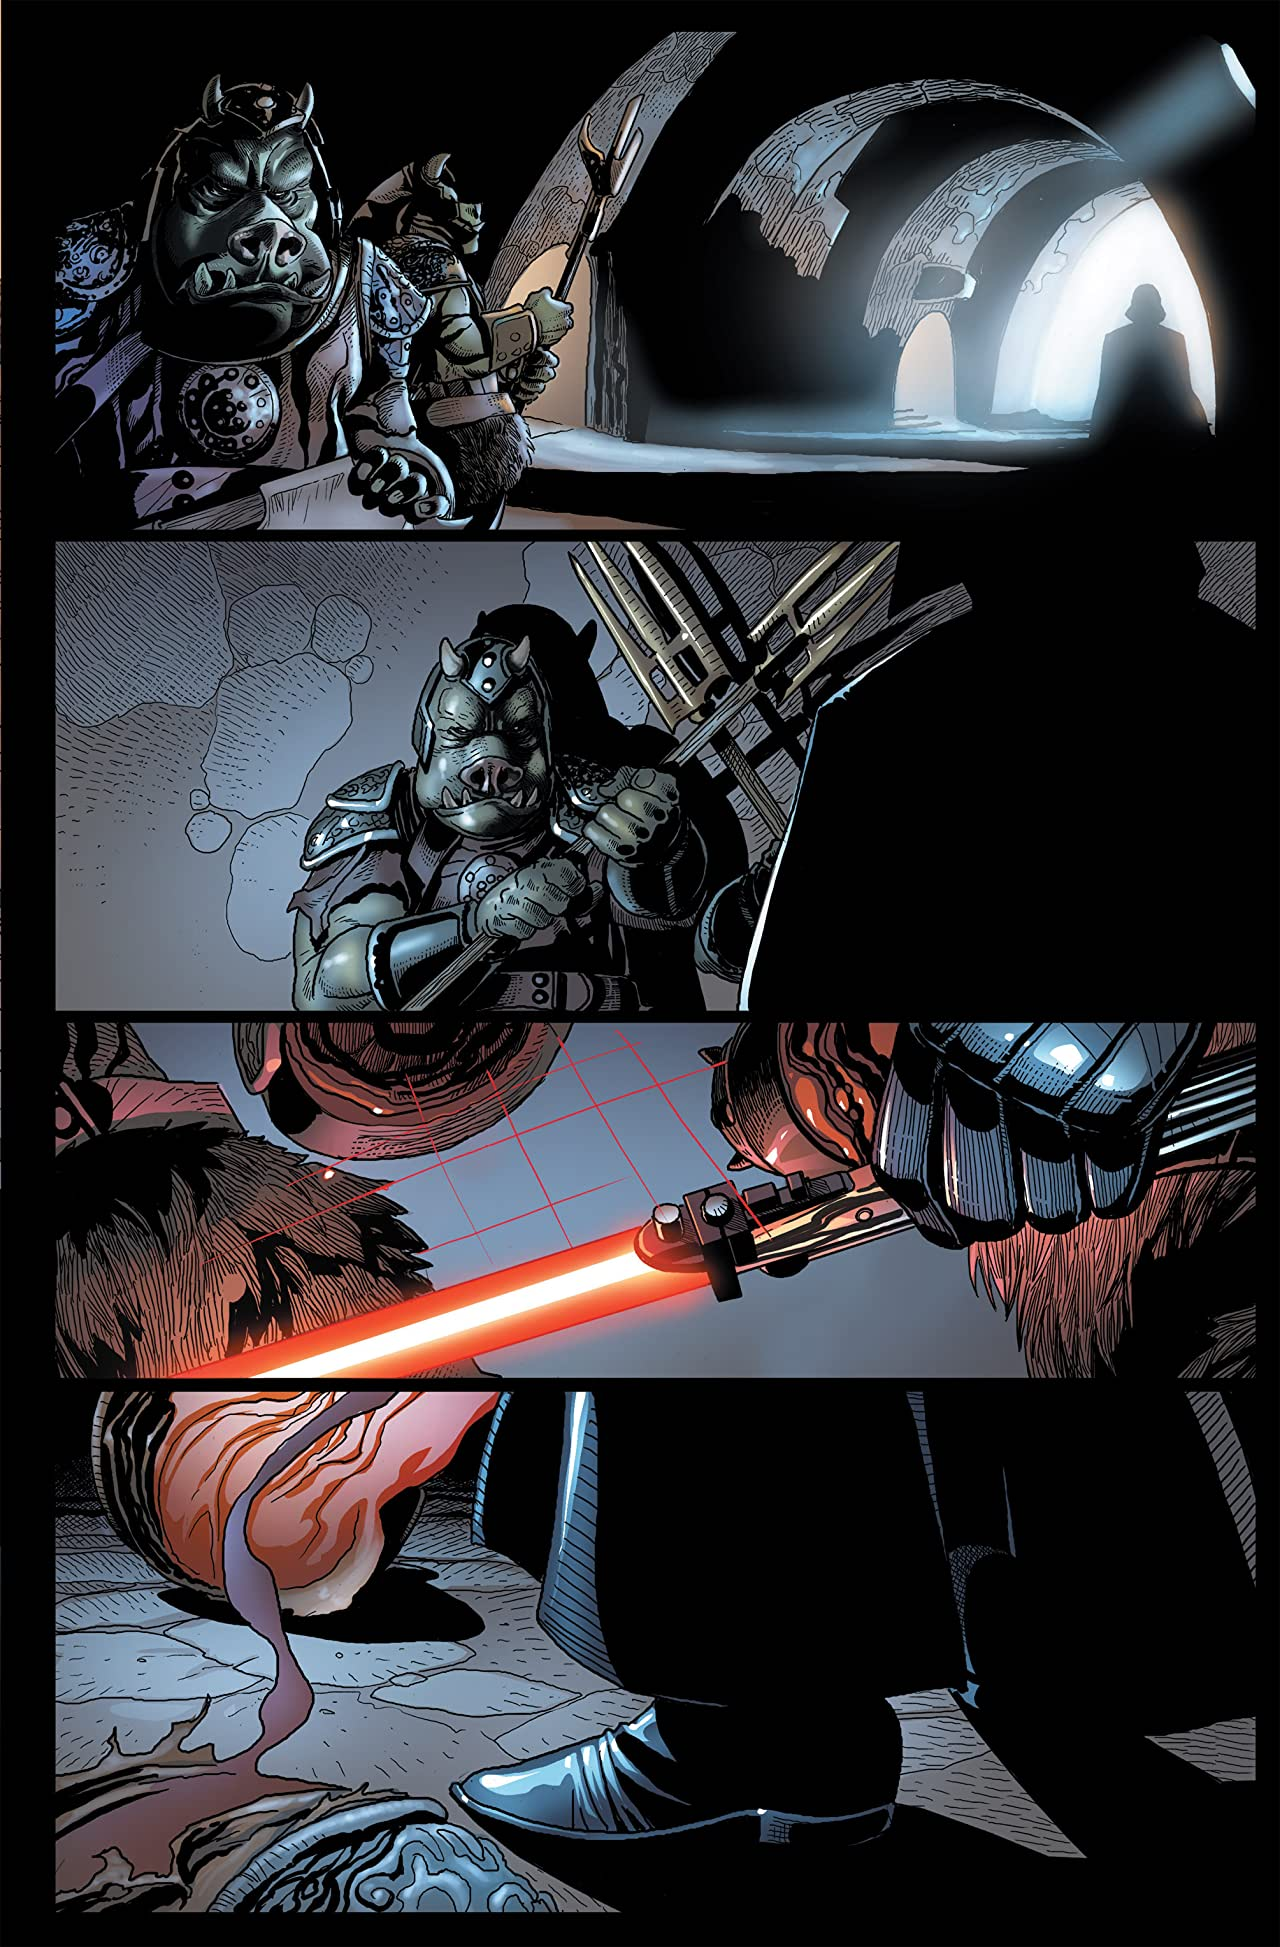 Star Wars Darth Vader Vol. 1: Vader